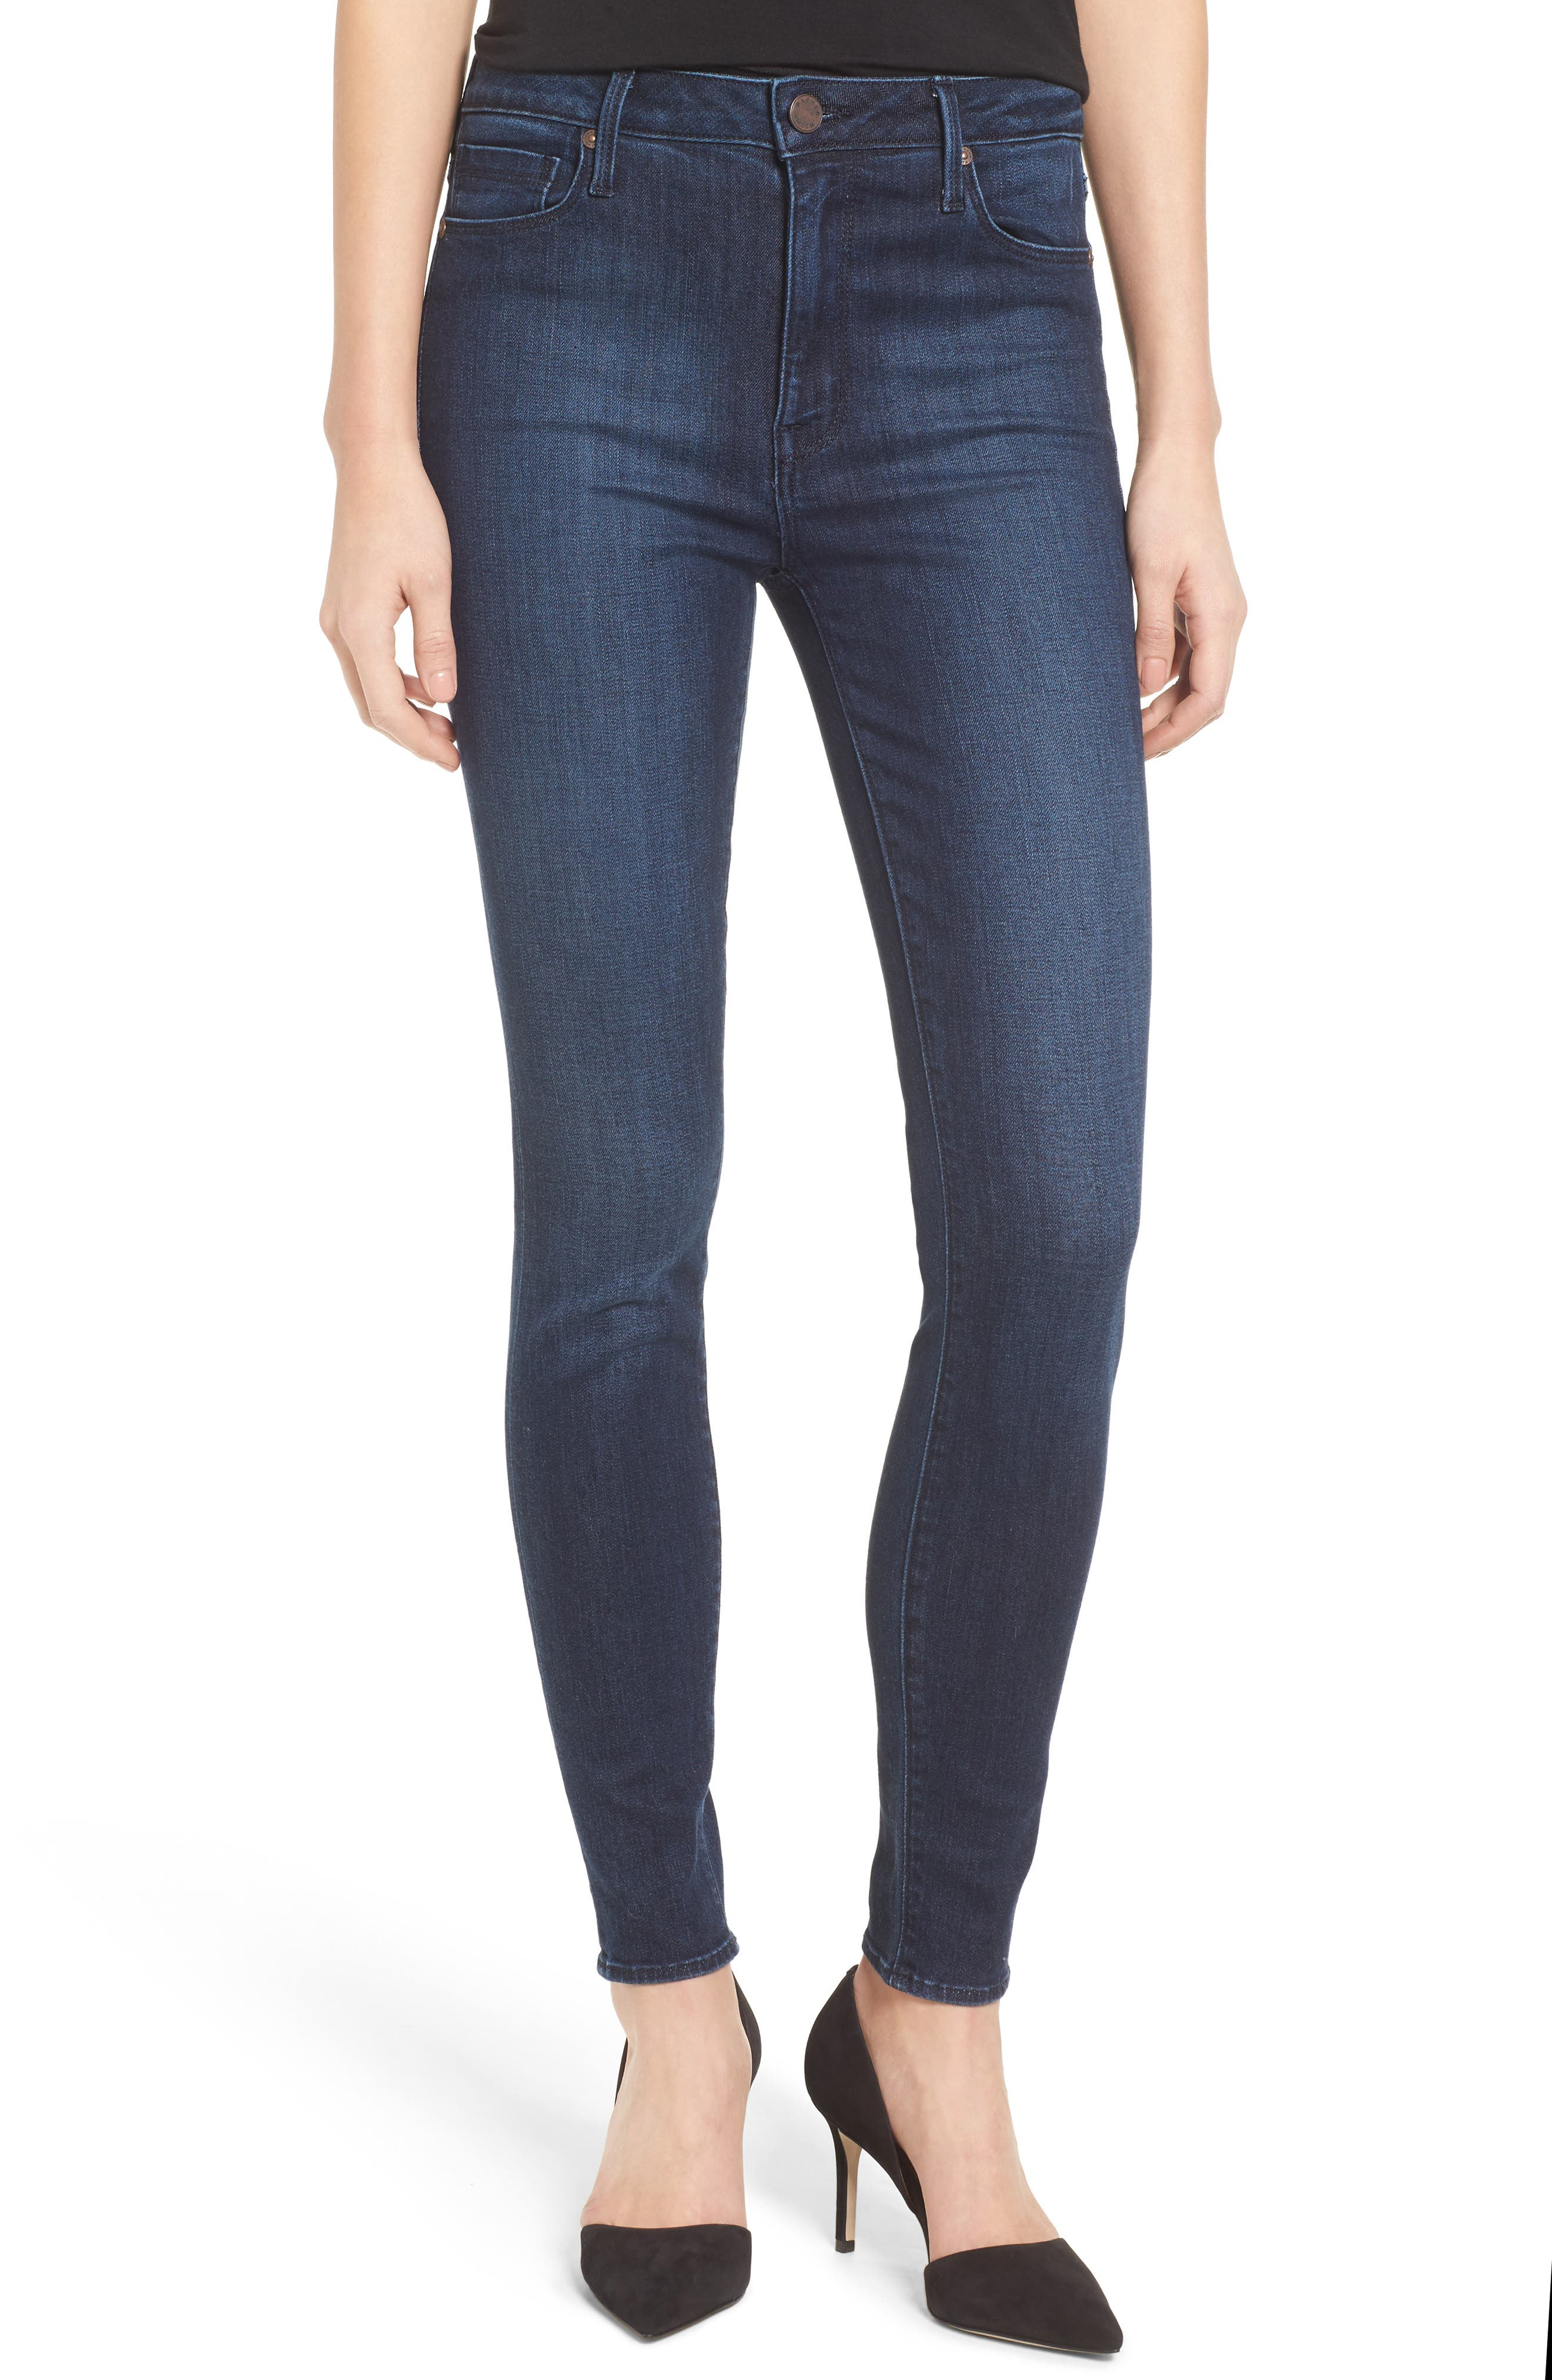 Bombshell High Waist Stretch Skinny Jeans,                         Main,                         color, Stellers Jay